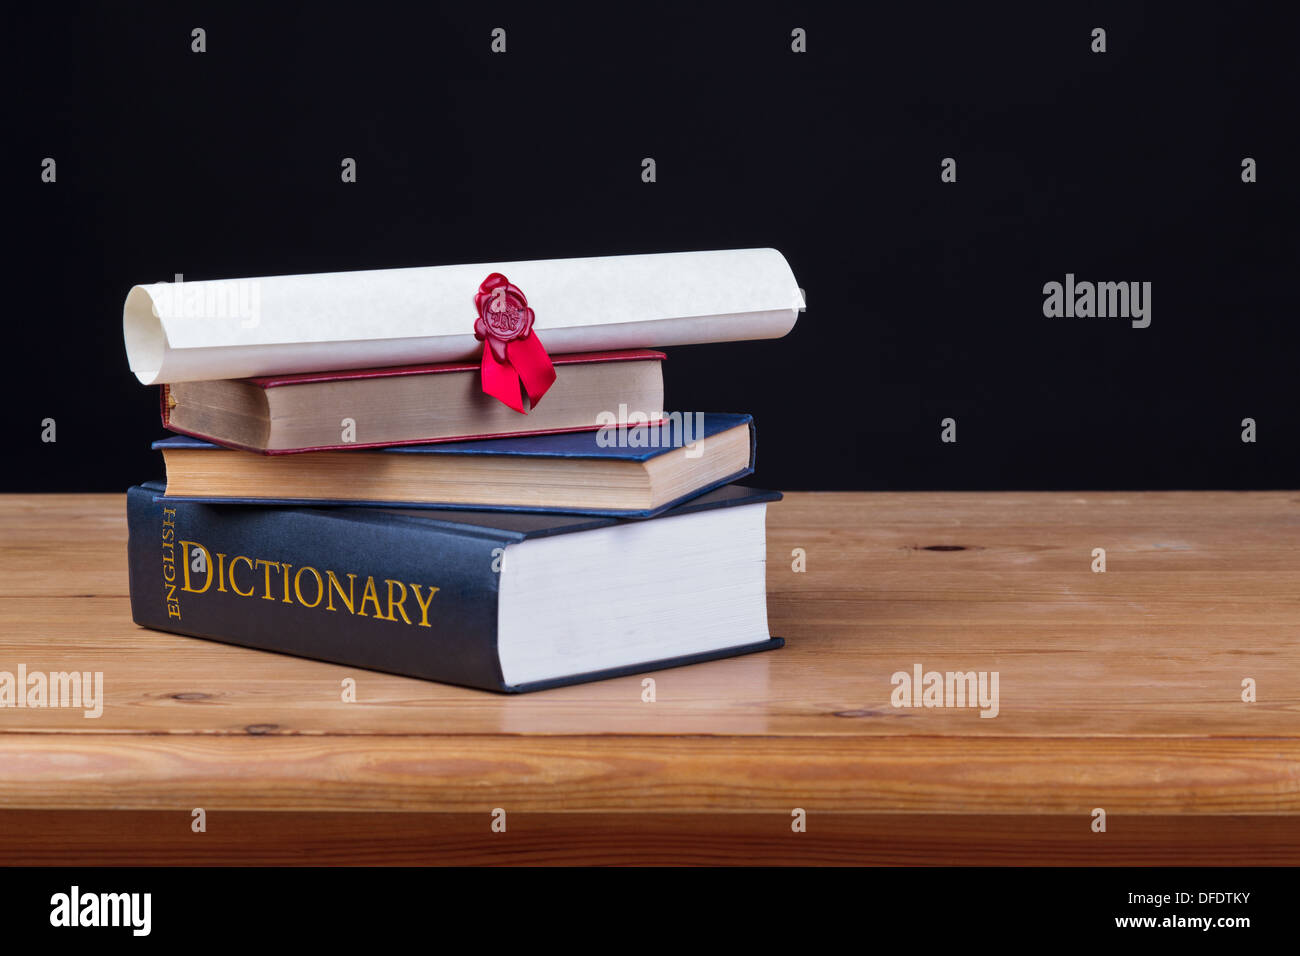 School desk with dictionary and a diploma against a black background, add you own text. - Stock Image